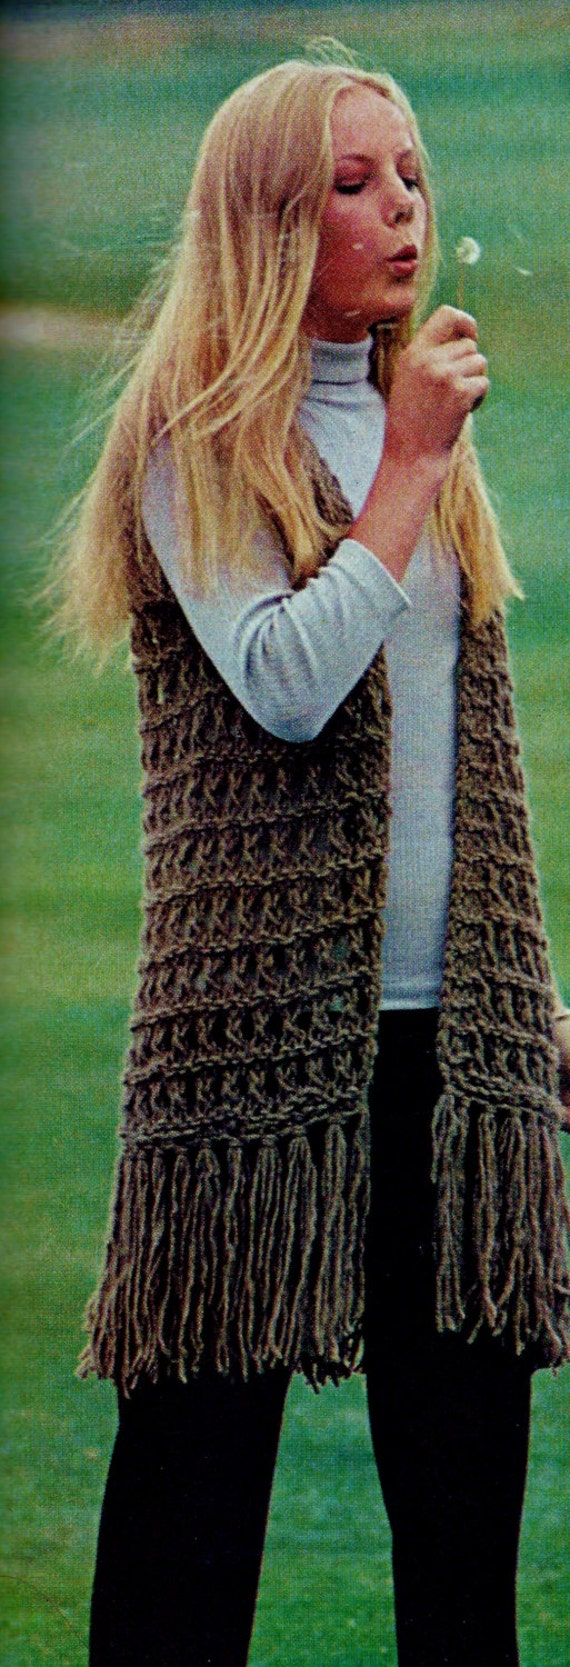 Knitting Patterns For Jumbo Needles : Jumbo Knit Fringe Vest Vintage Knitting Pattern Download